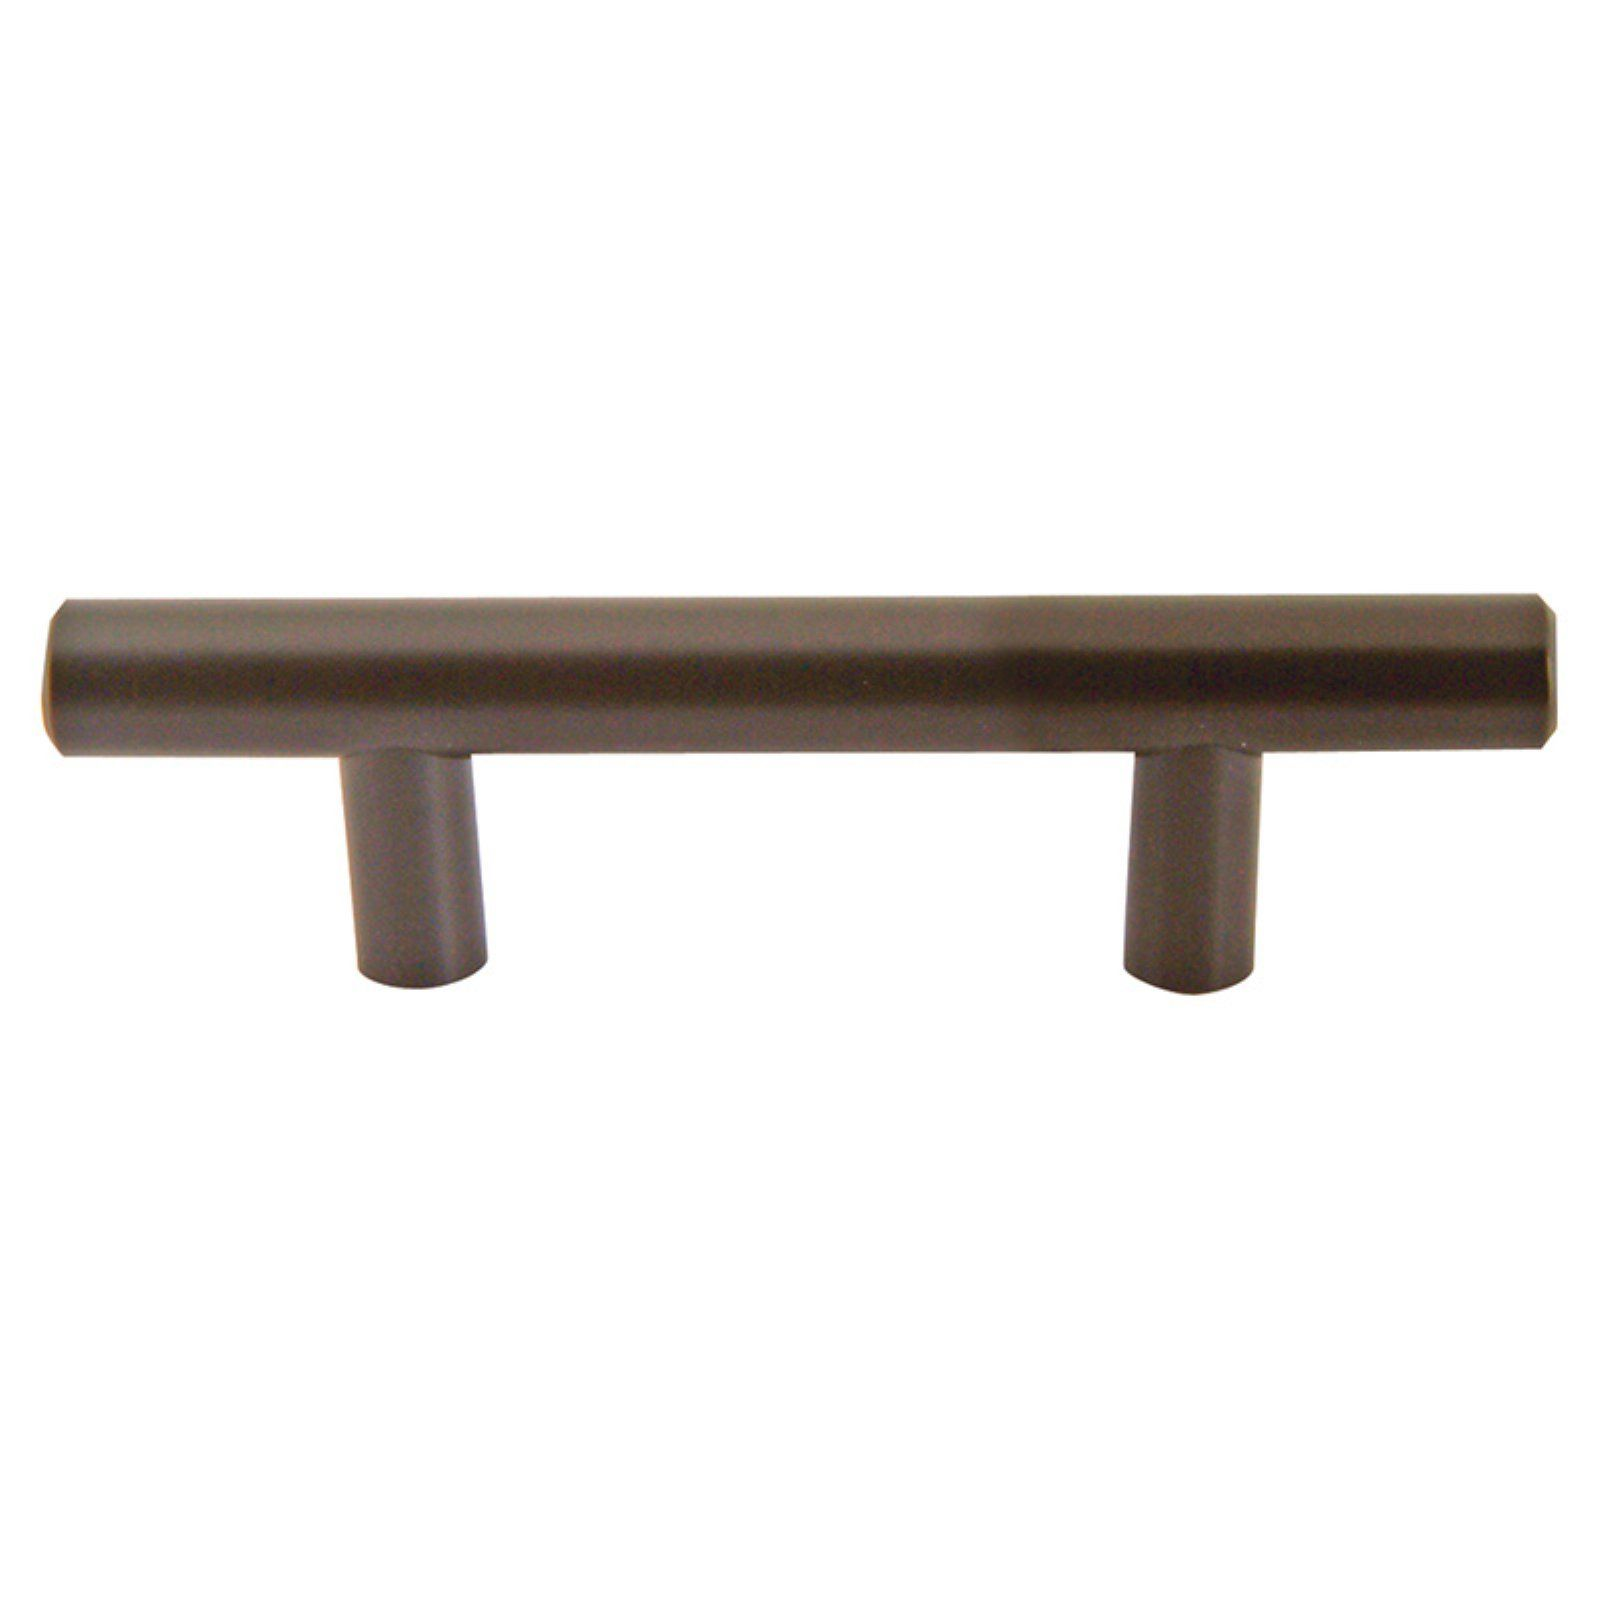 Atlas Homewares A820 Bn Linea Rail Cabinet Pull Cabinet Drawer